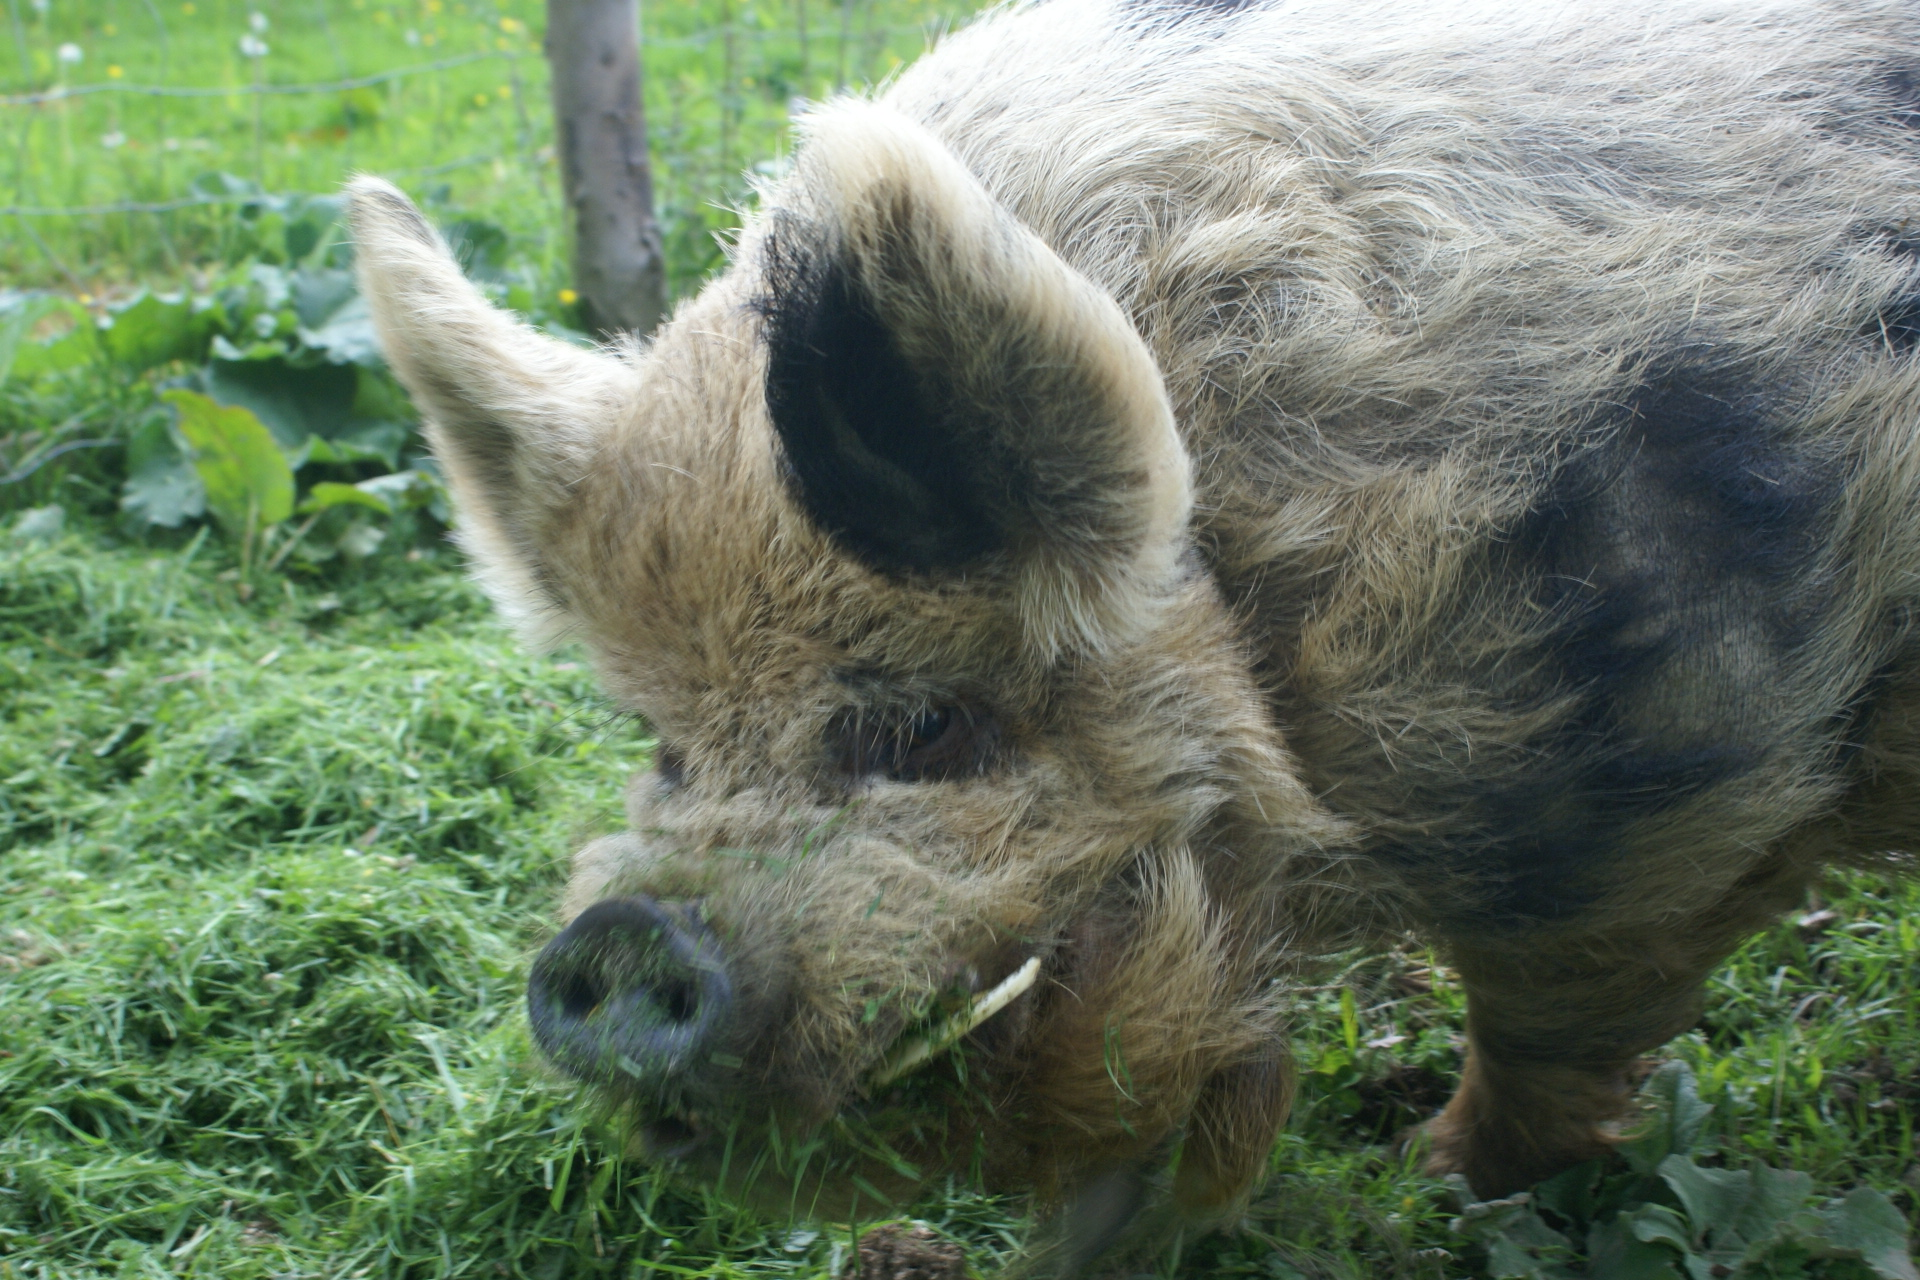 Boris, the resident pig at Eco-Gites of Lenault